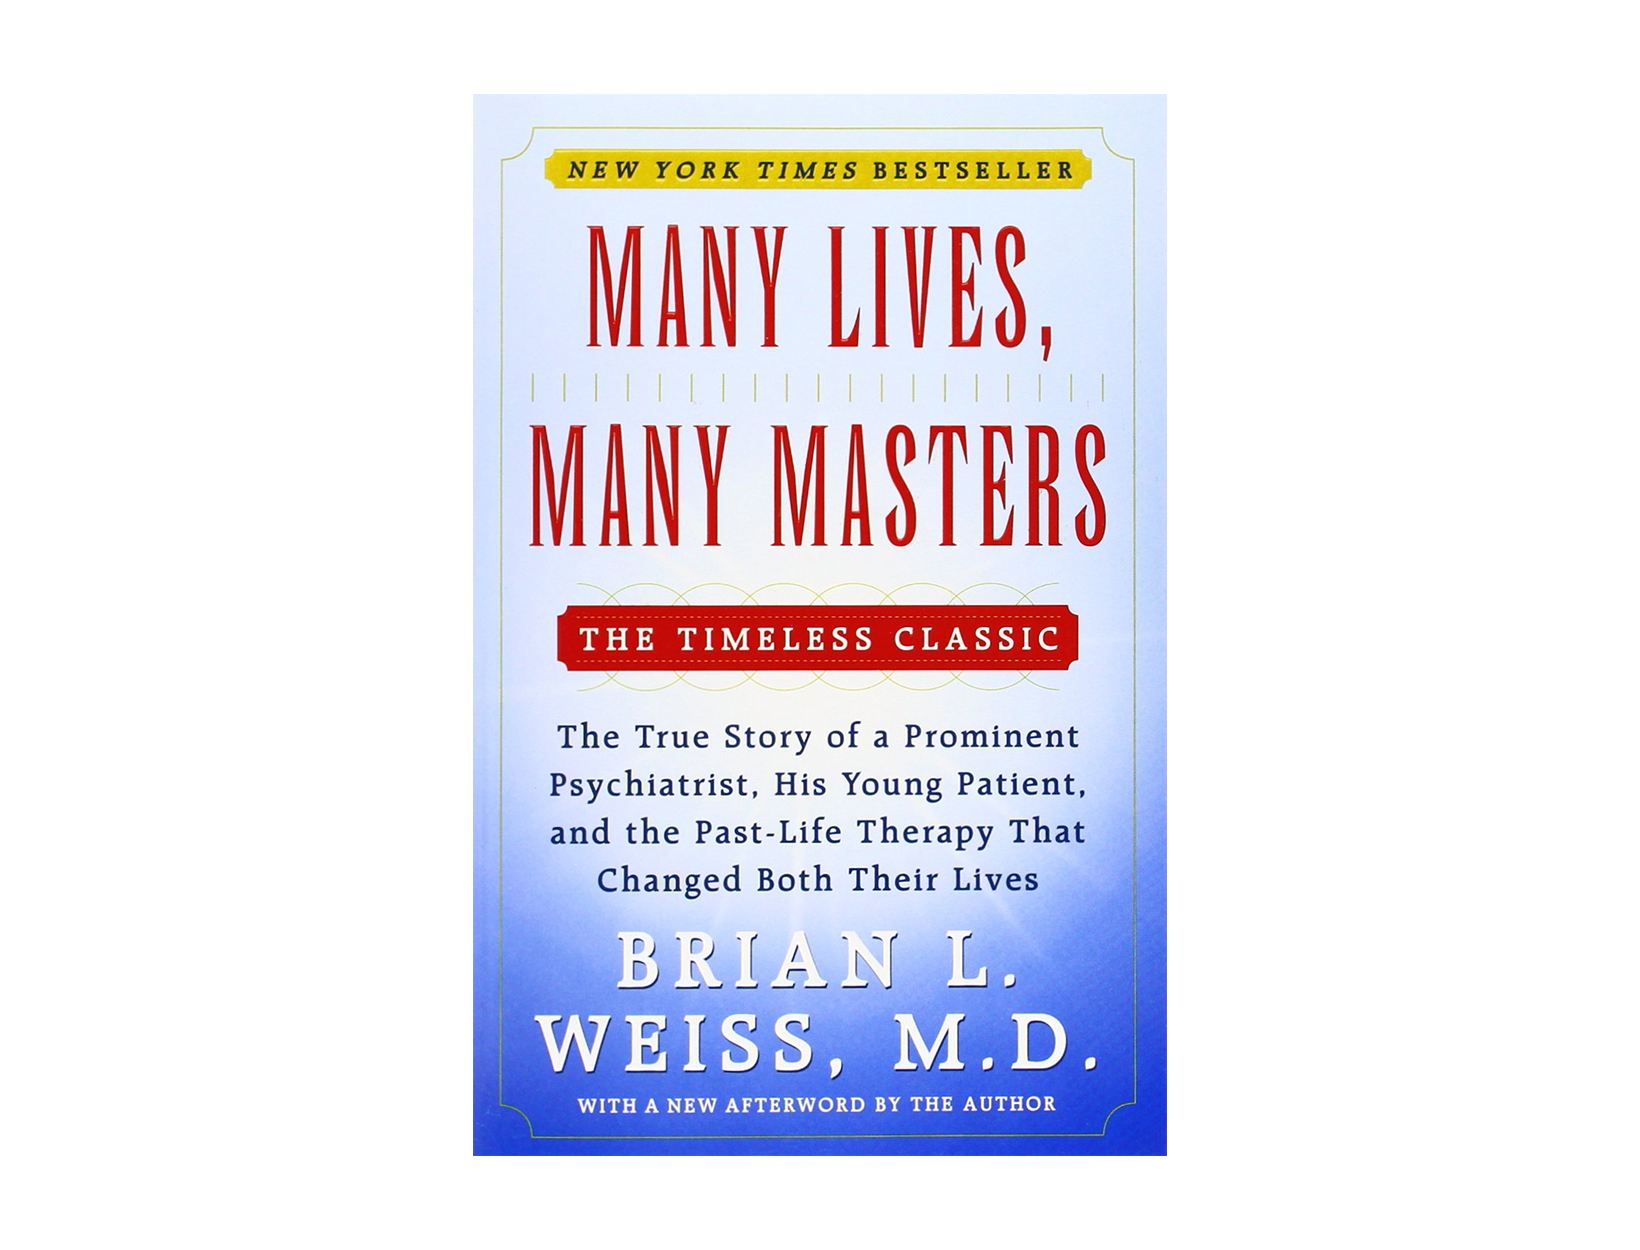 Many Lives, Many Masters: The True Story of a Prominent Psychiatrist, His Young Patient, and the Past-Life Therapy That Changed Both Their Lives by Brian L. Weiss, M.D.